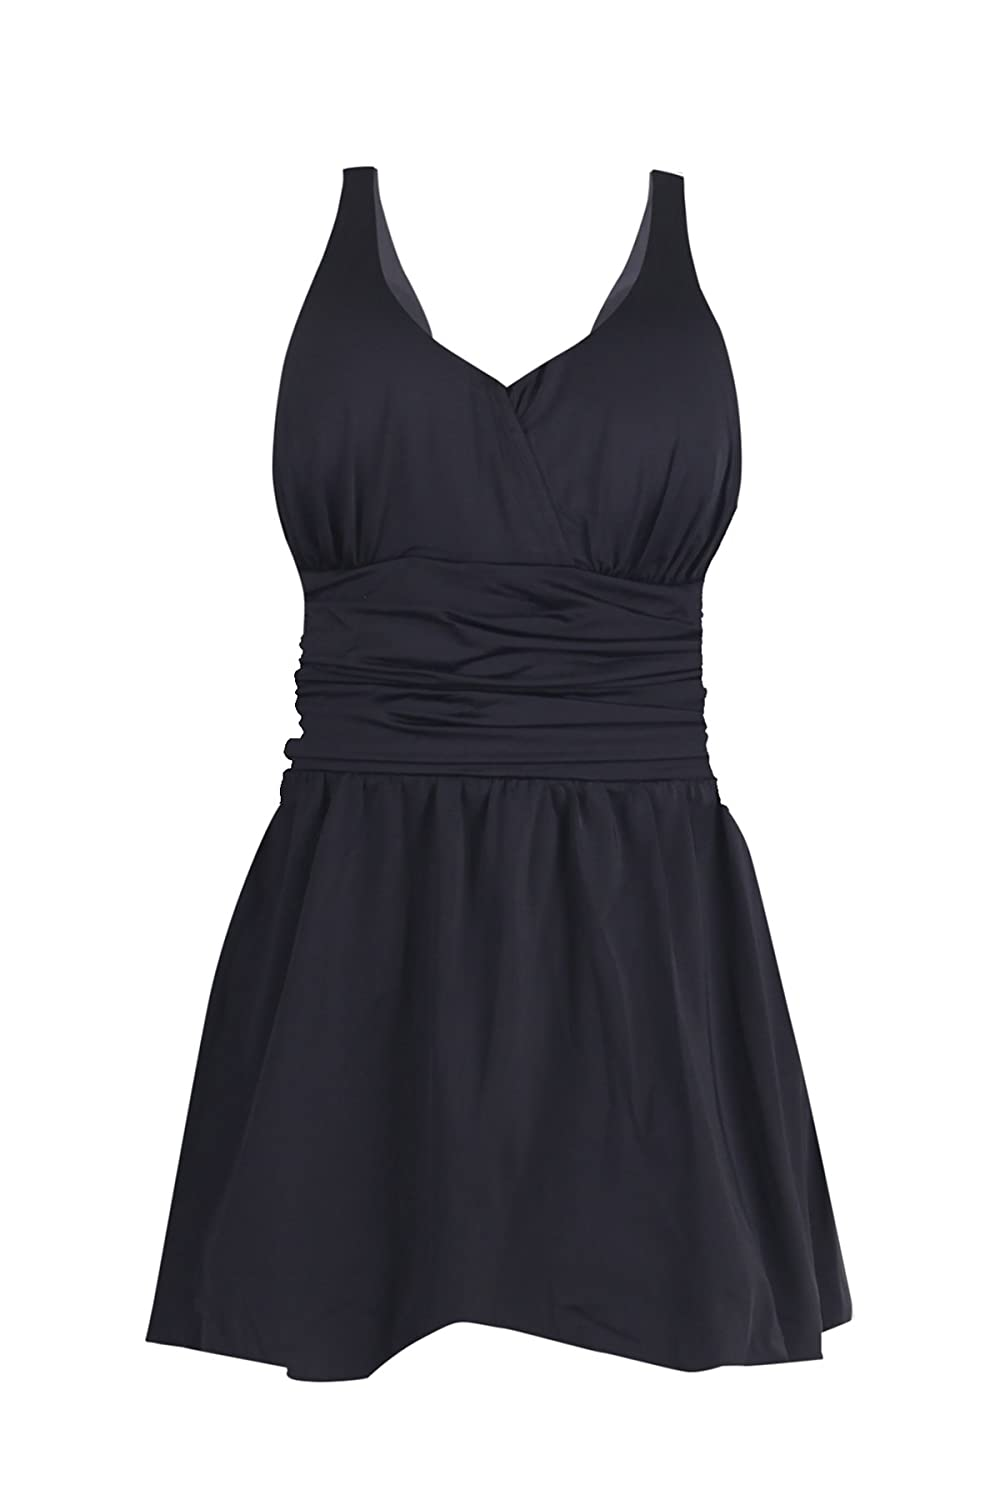 da9bcdacb8561 Size : Full size are available. All products size is US standard size.  Please select your normal size. V neck line with adjustable shoulder  straps, wireless ...